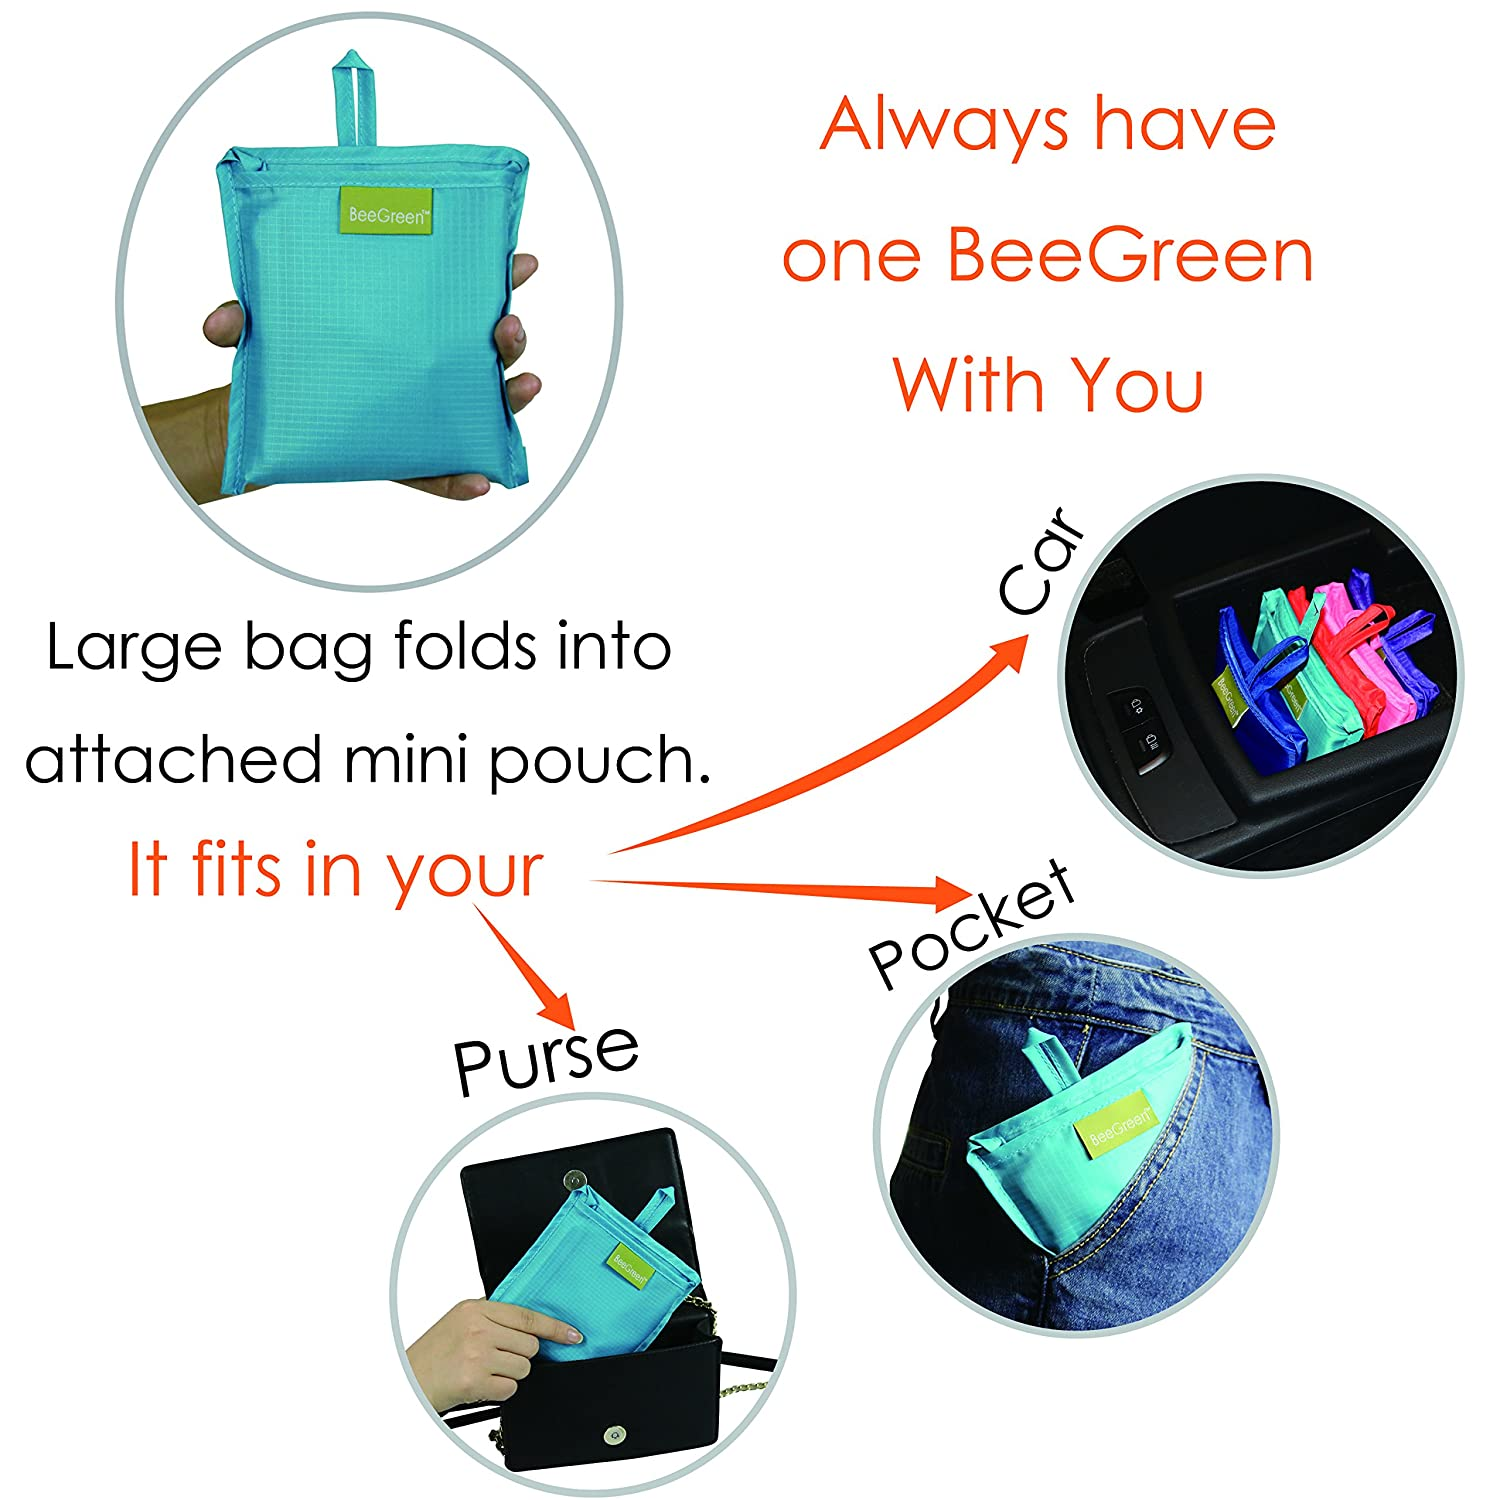 amazoncom reusable grocery bags set of 5 grocery tote foldable into attached pouch ripstop polyester reusable shopping bags washable